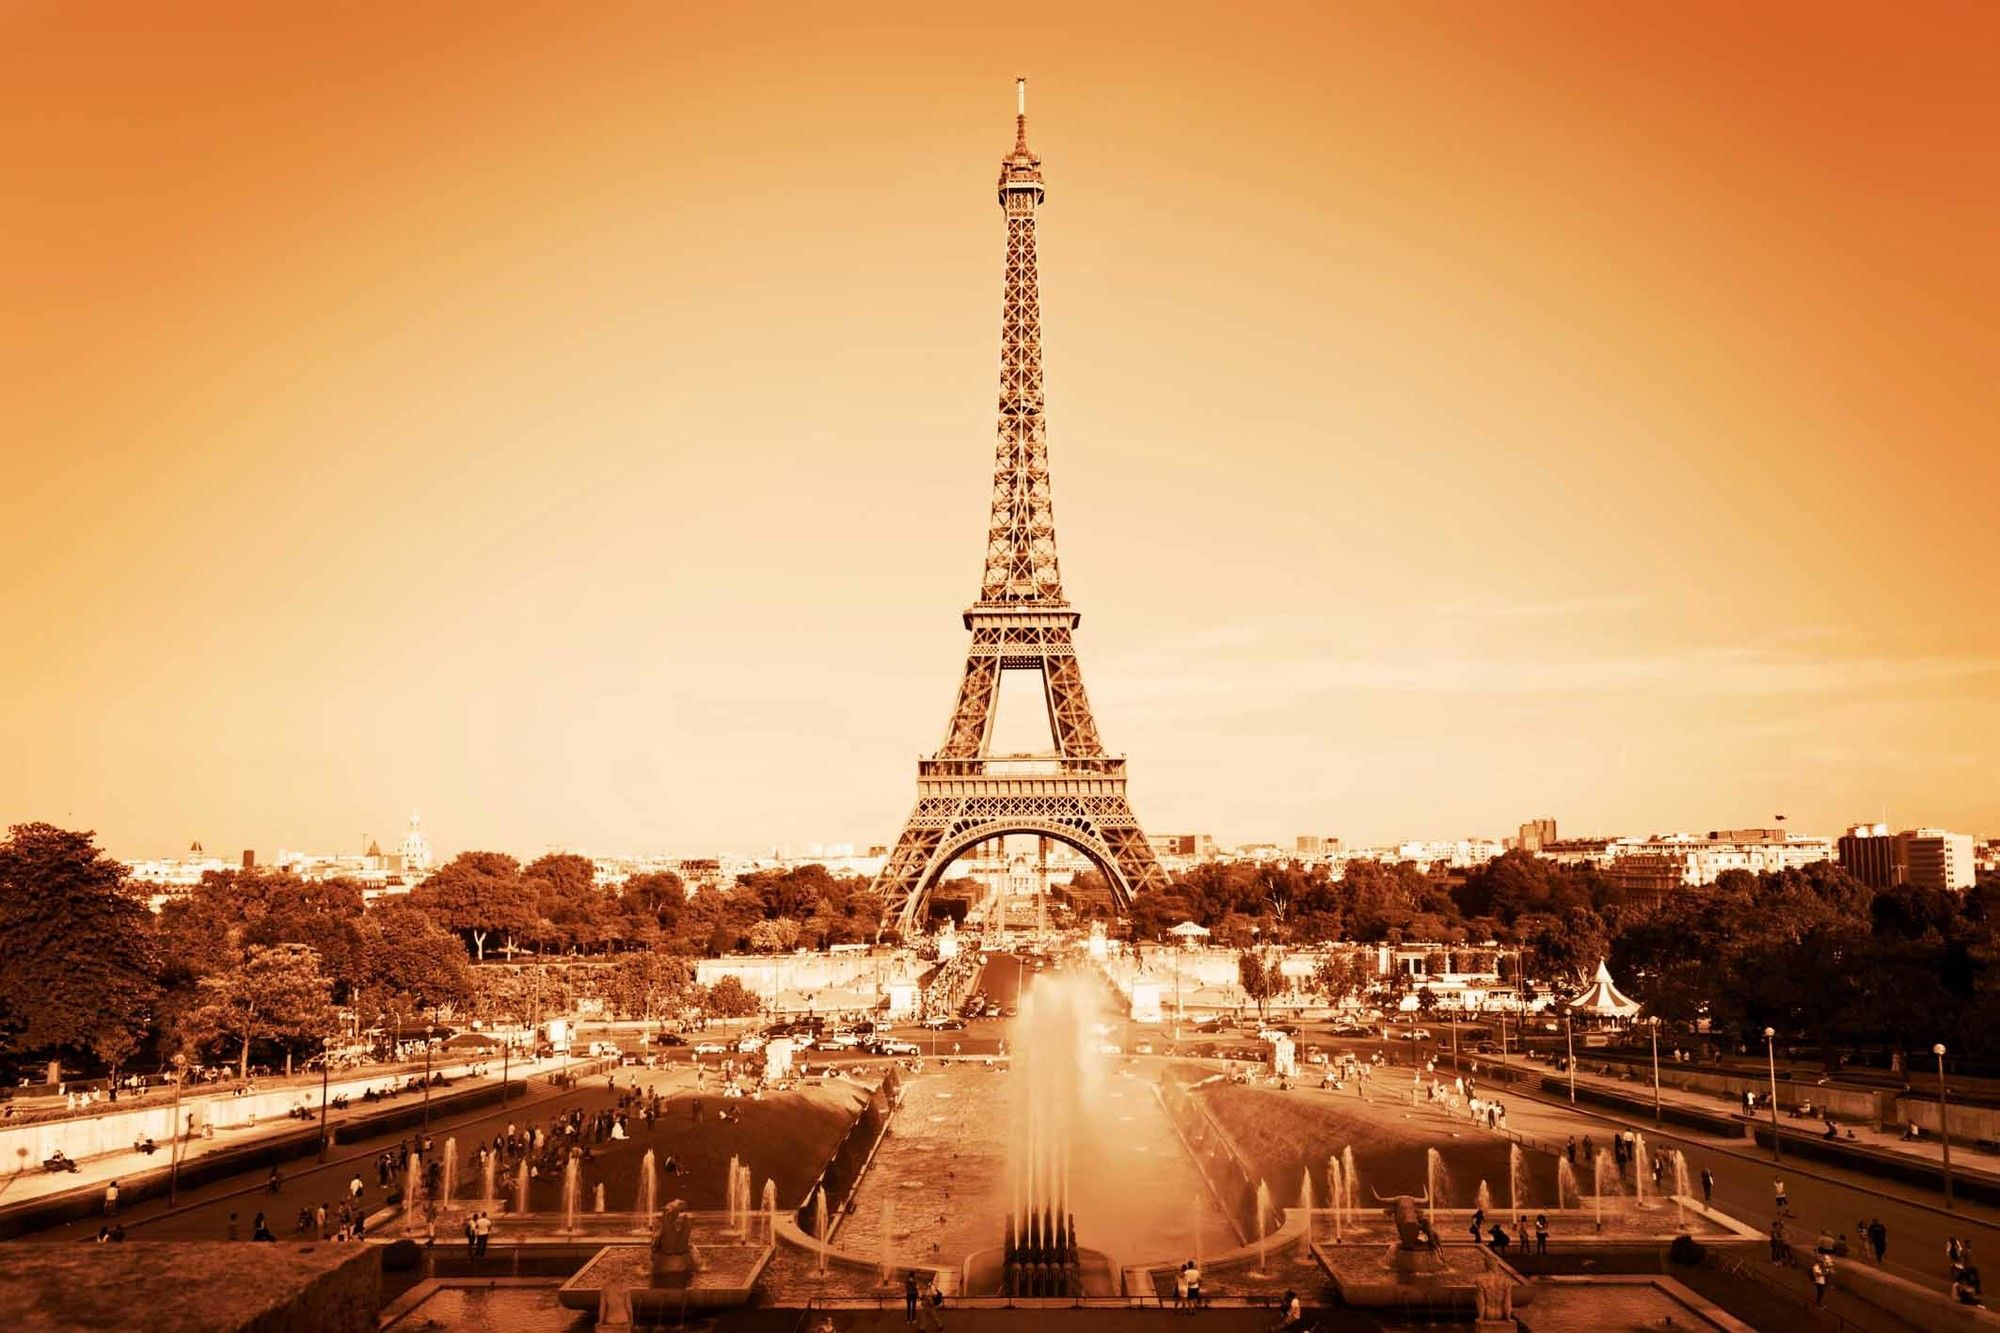 Eiffel Tower Photographic Print   Products   Pinterest   Products